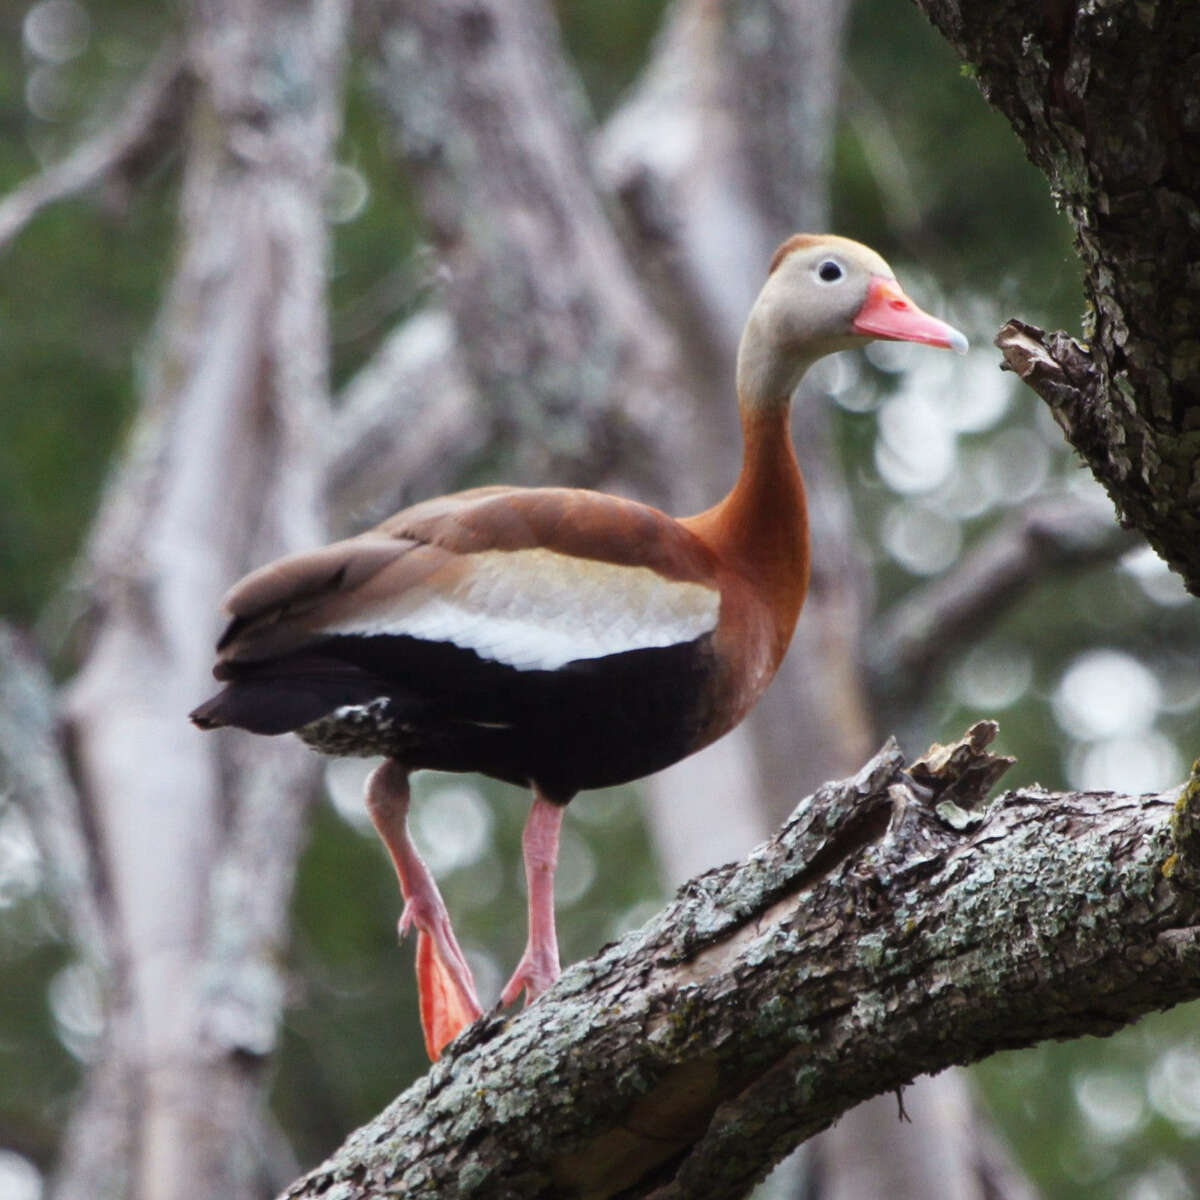 This black-bellied tree duck spent the night in a drought-killed cedar elm near Geronimo Creek.